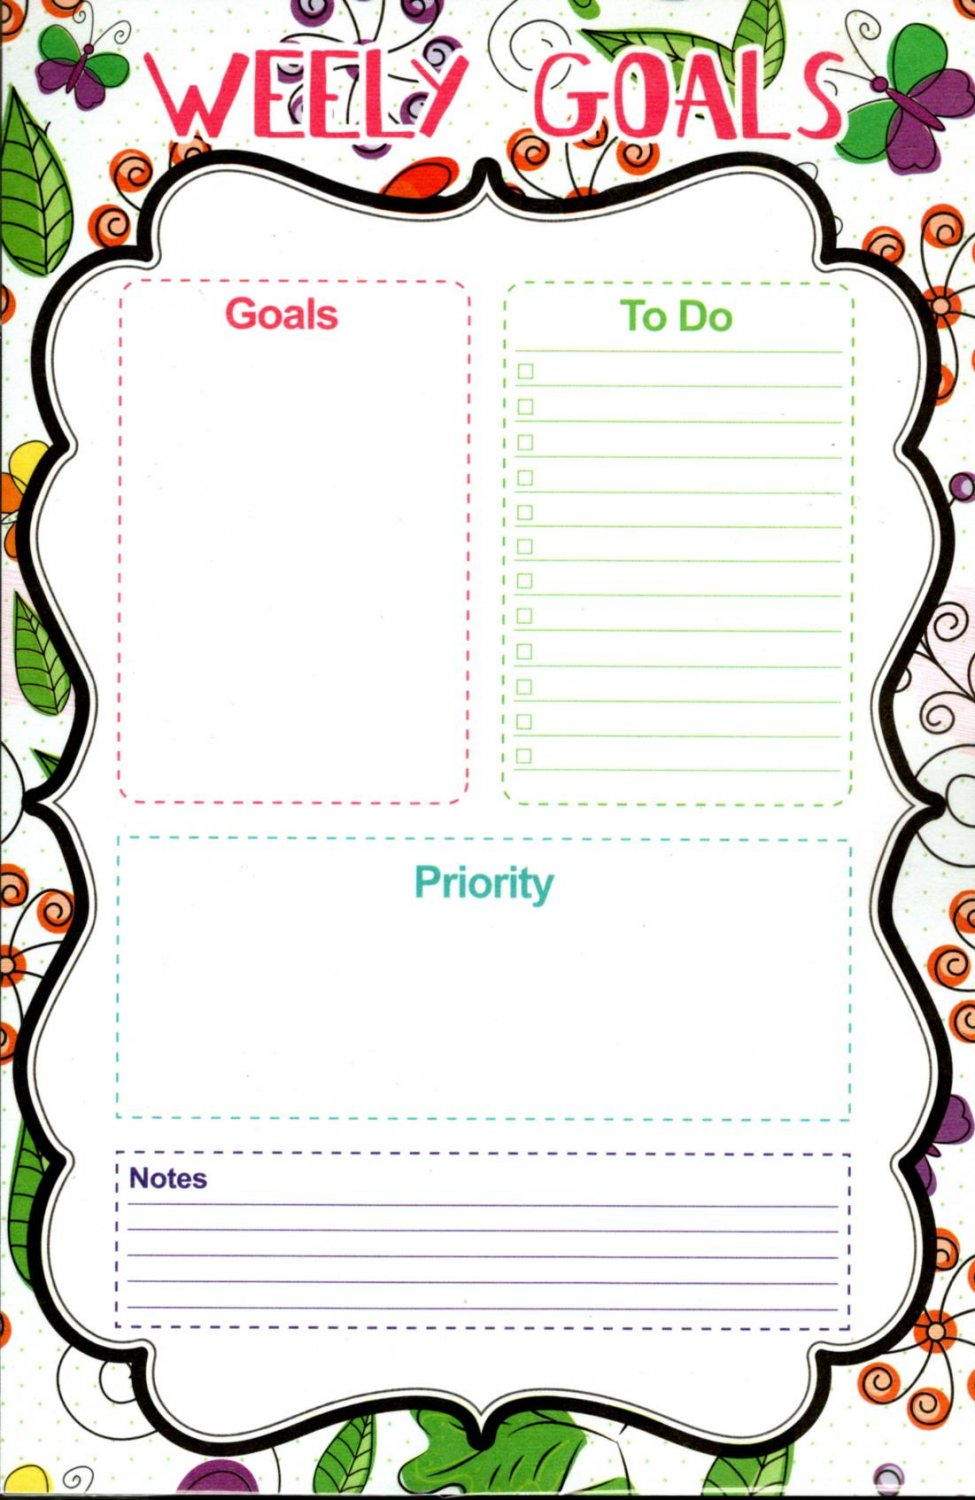 """List Pad Weekly Planner Calendar - Welly Goals (Goals, To Do, Priority, Notes) 5.5"""" X 8.5"""""""